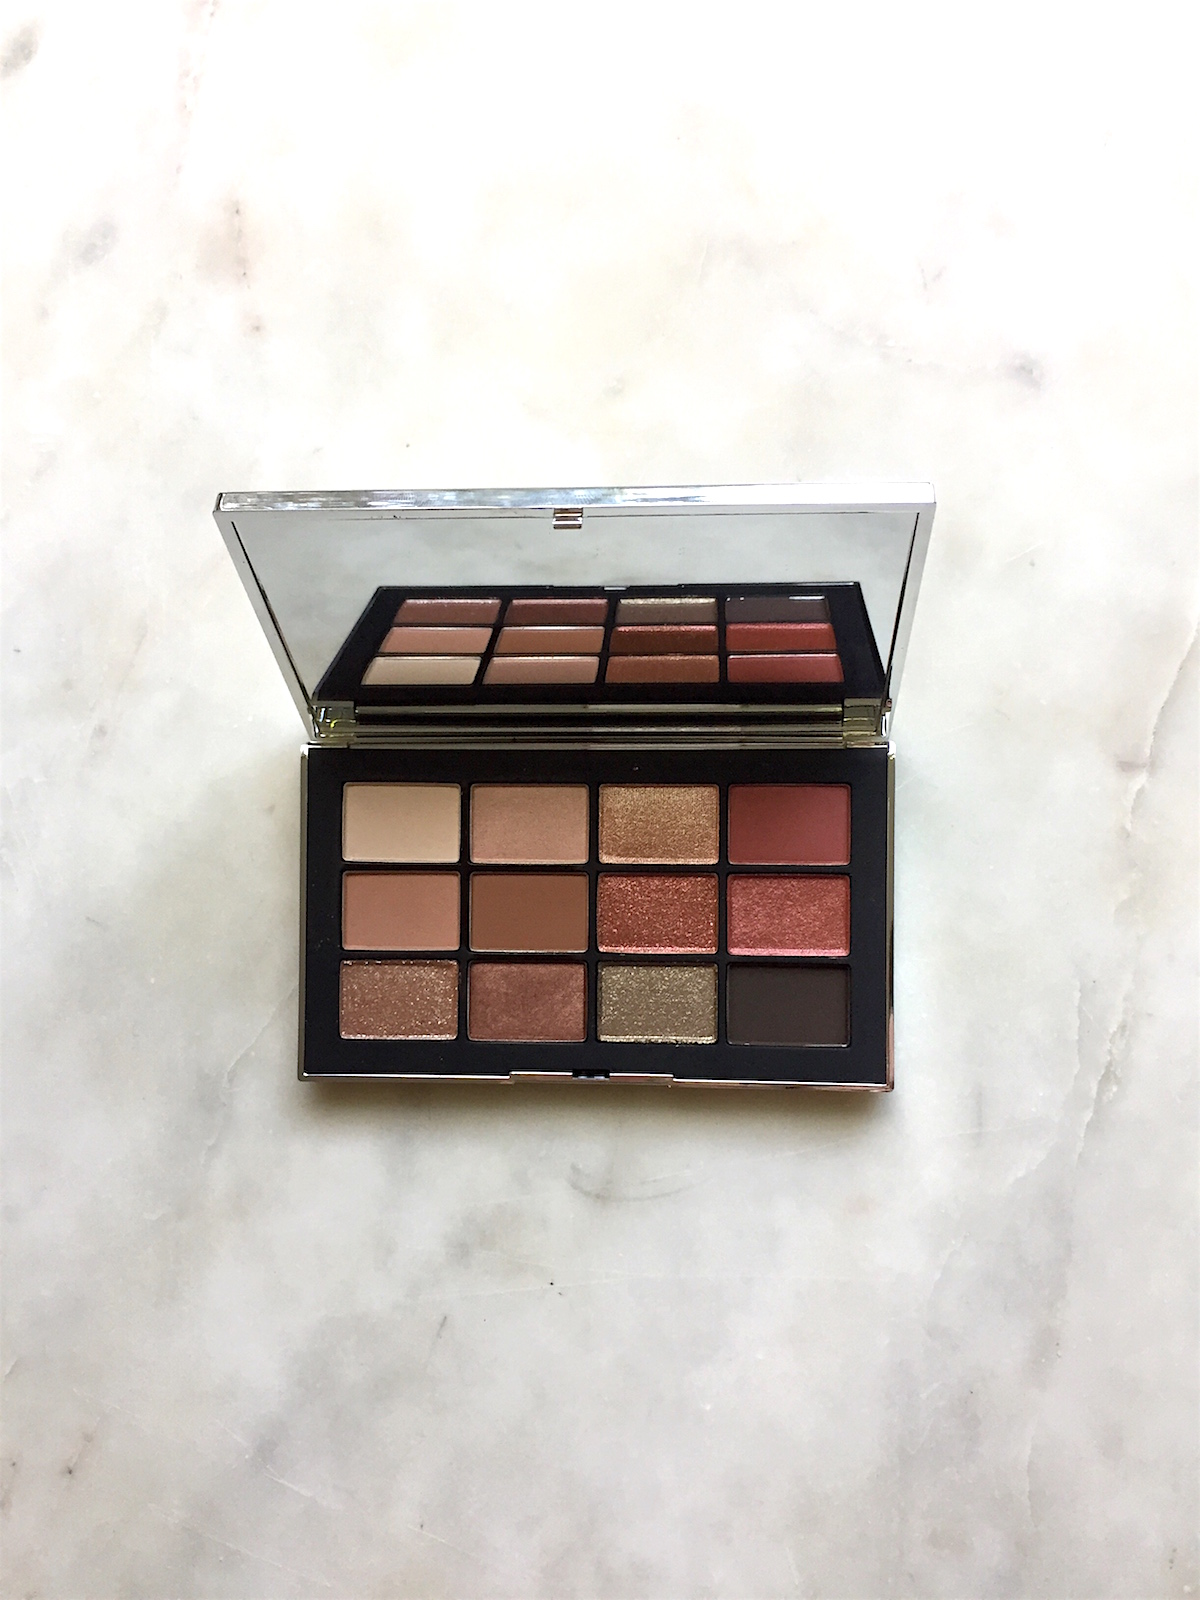 NARS Wanted Palette: A quick review